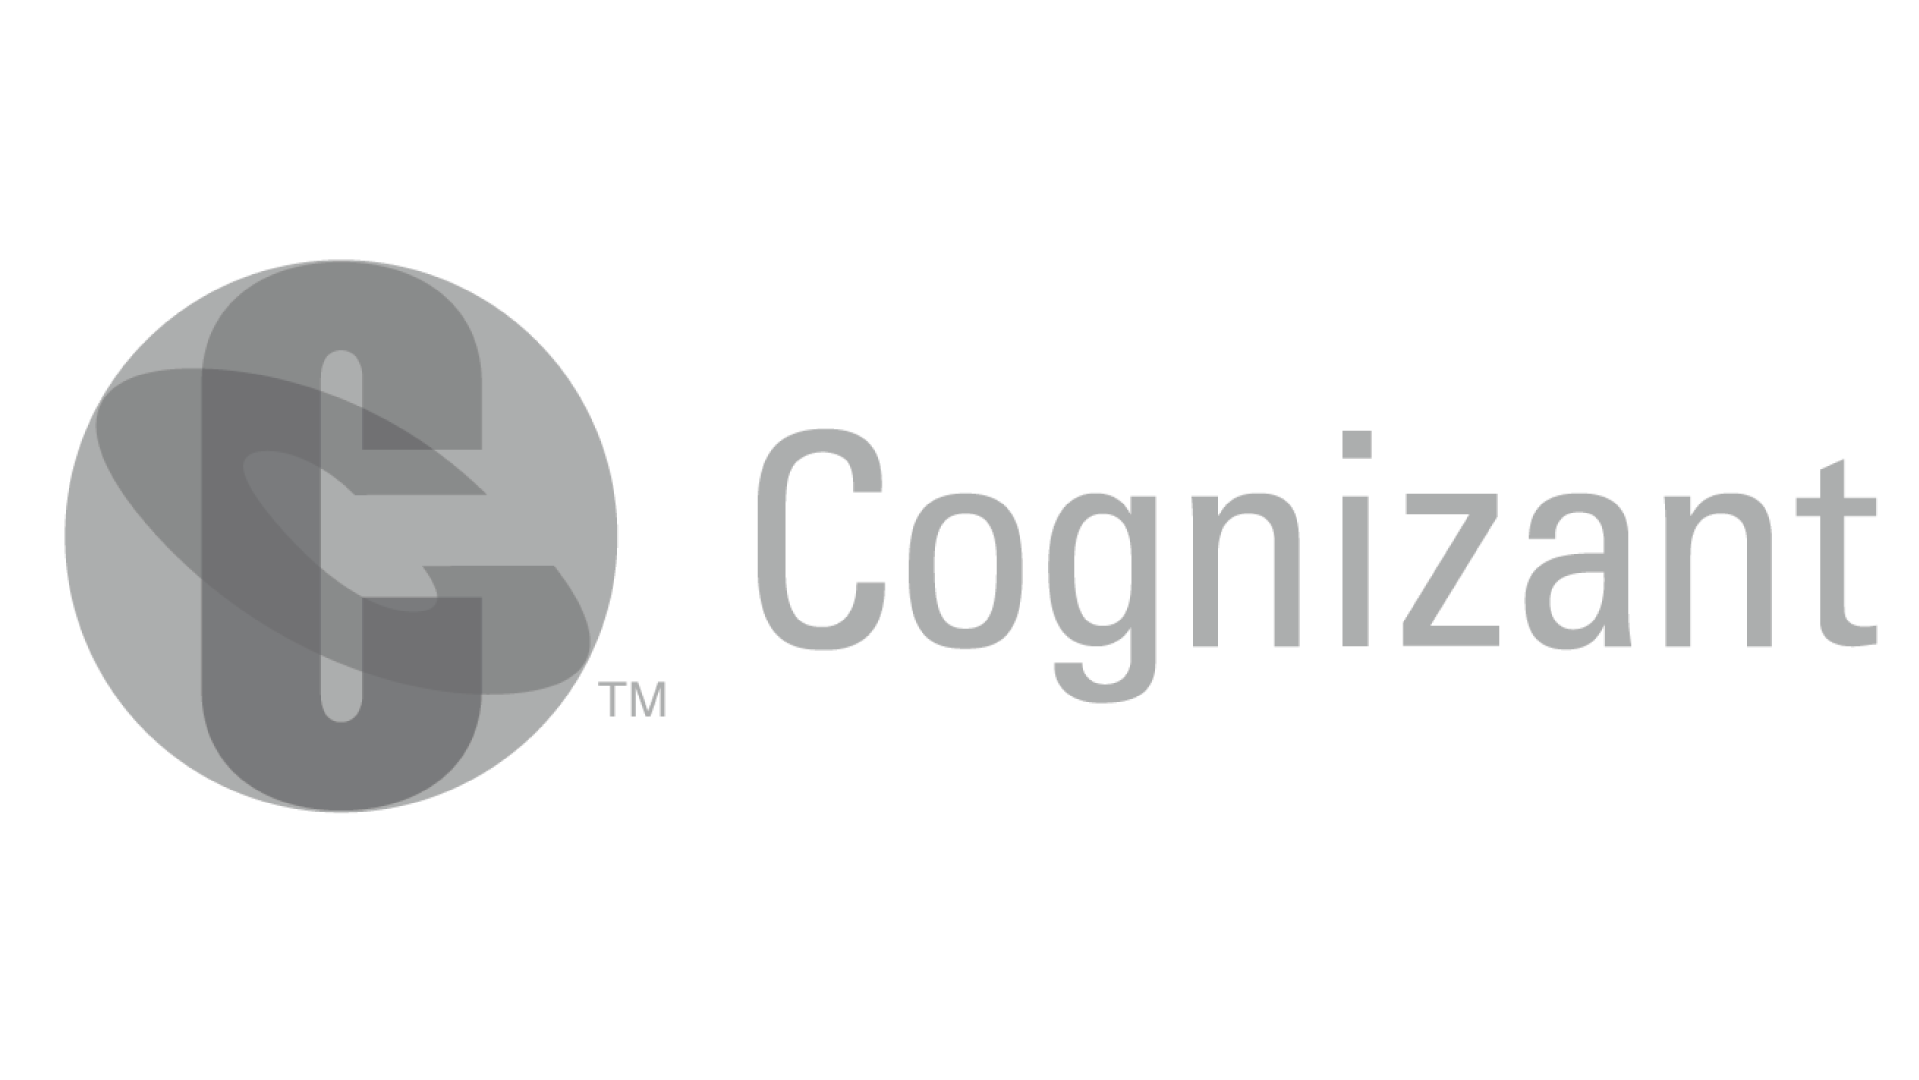 Cognizant Digital Solutions logo. Cognizant  is one of the many organisations People Builders has as client.